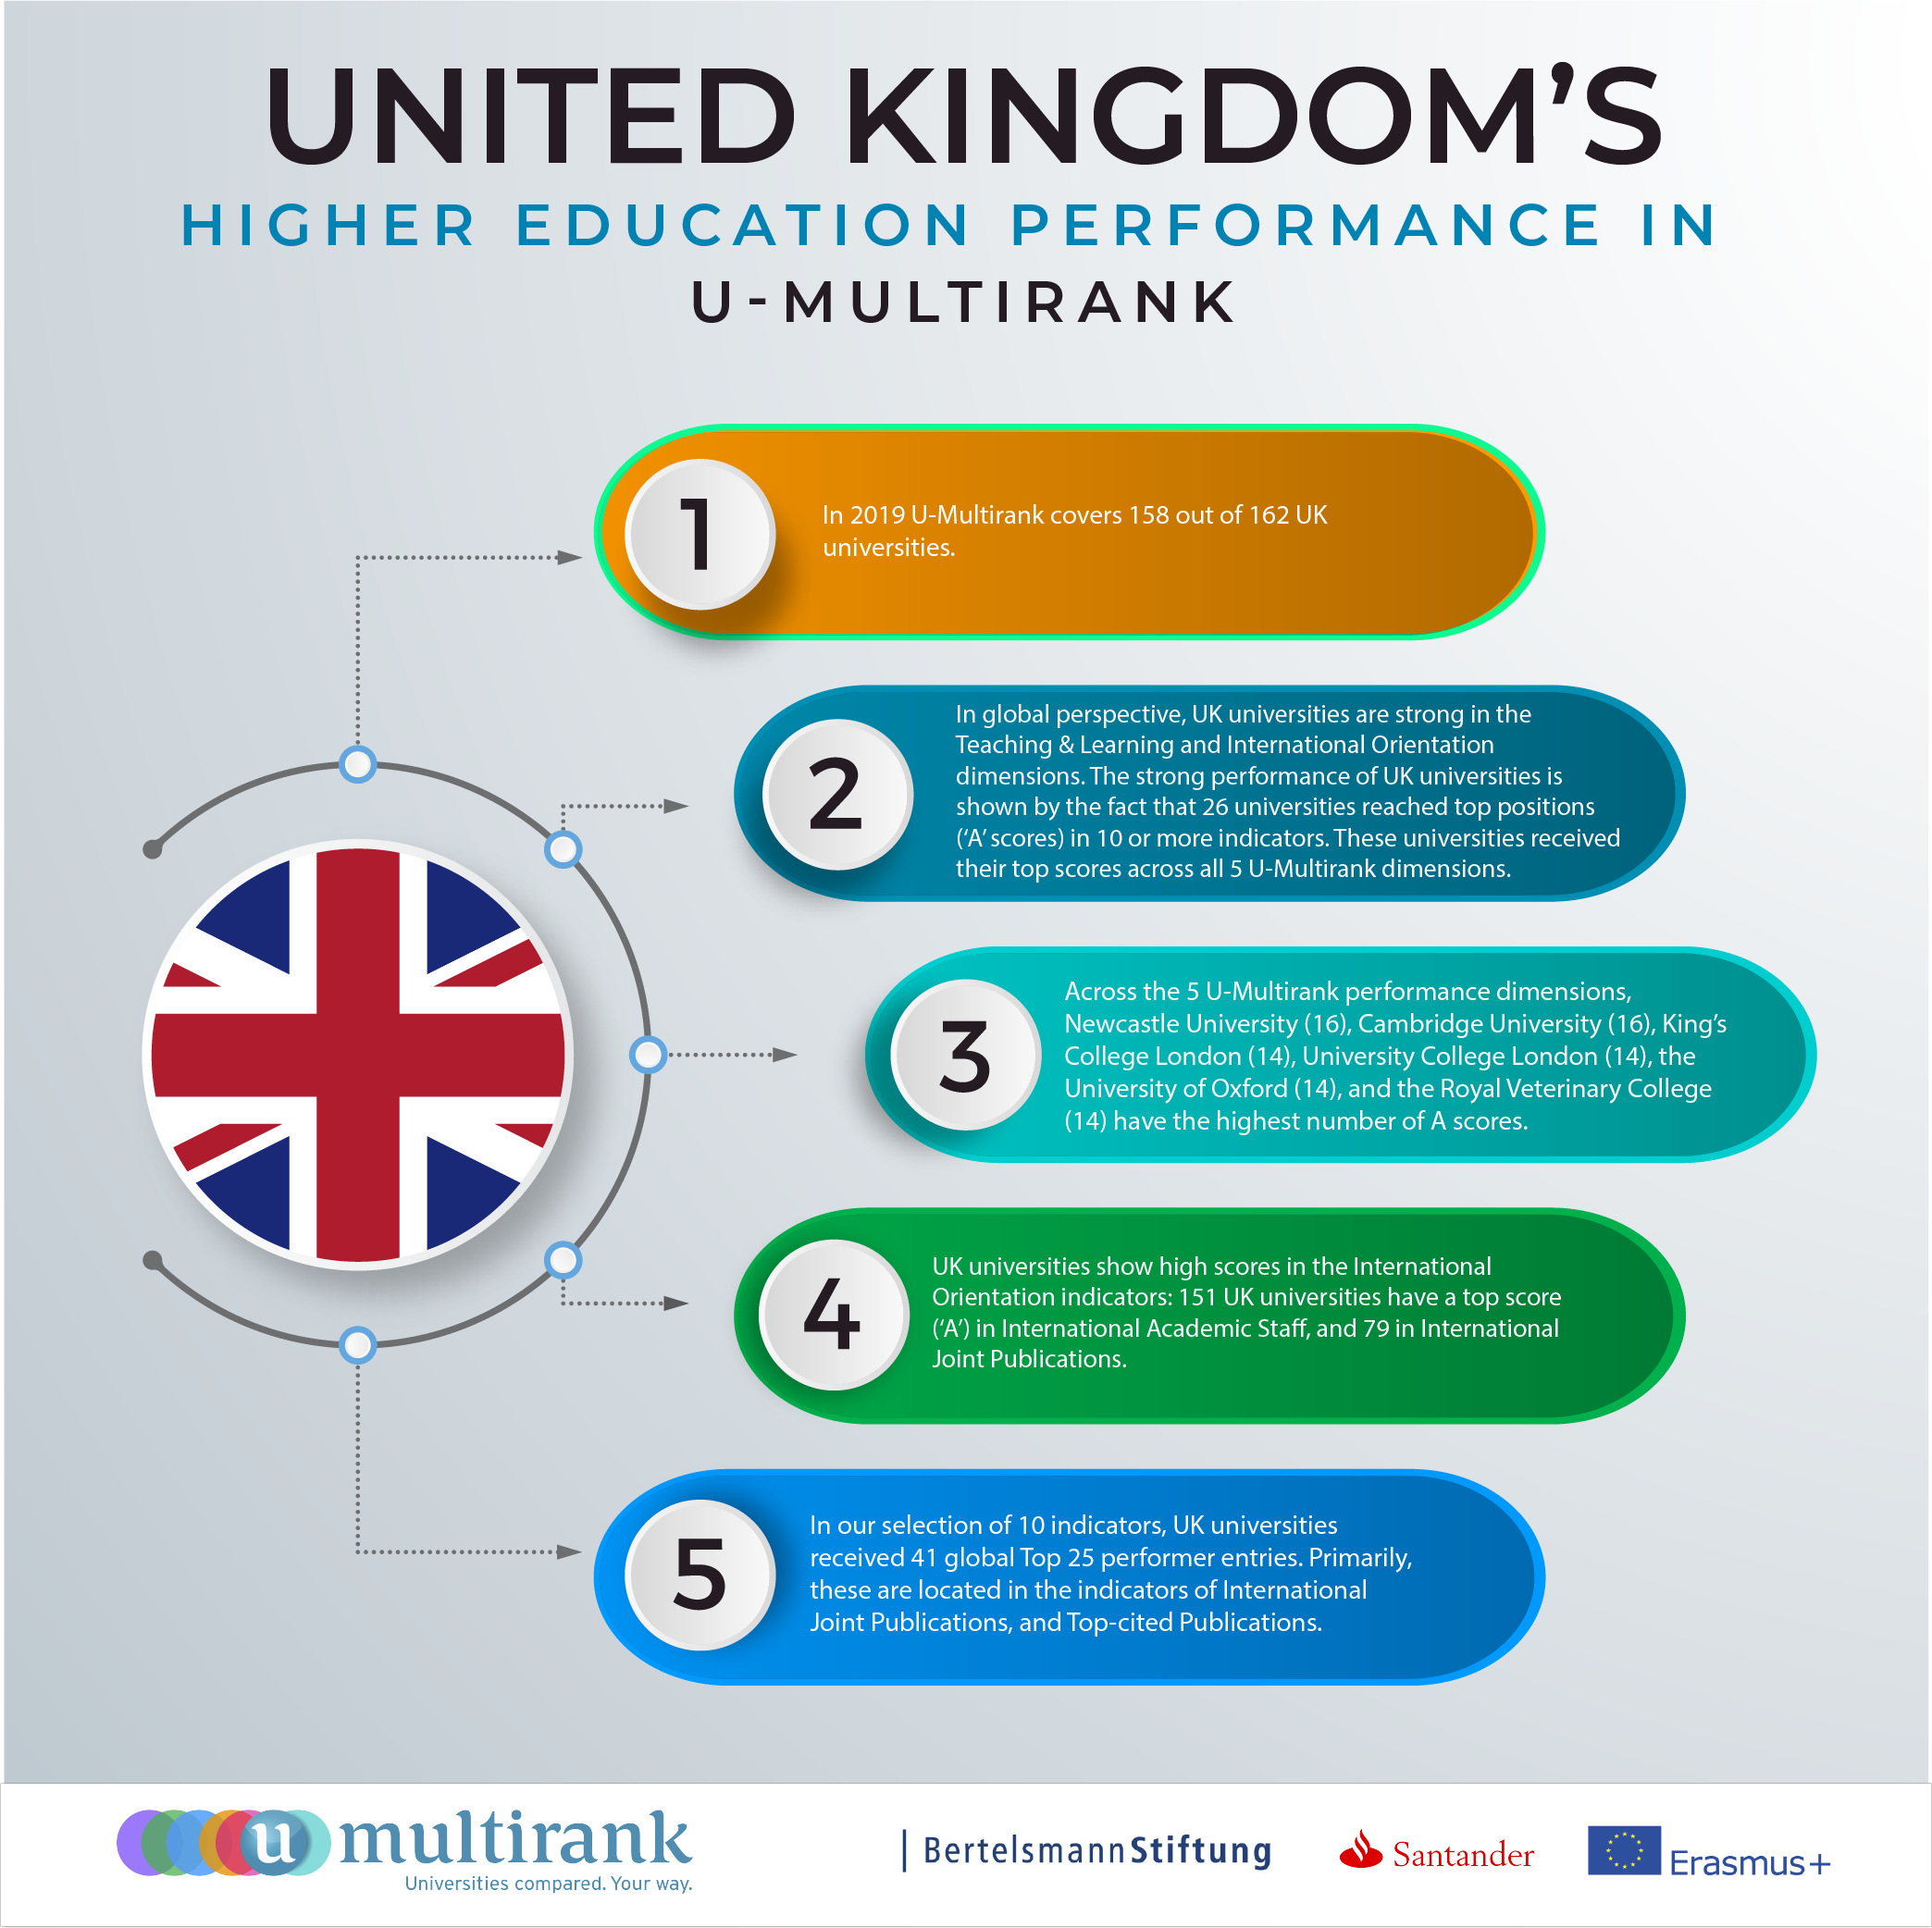 The UK's Higher Education Performance in U-Multirank